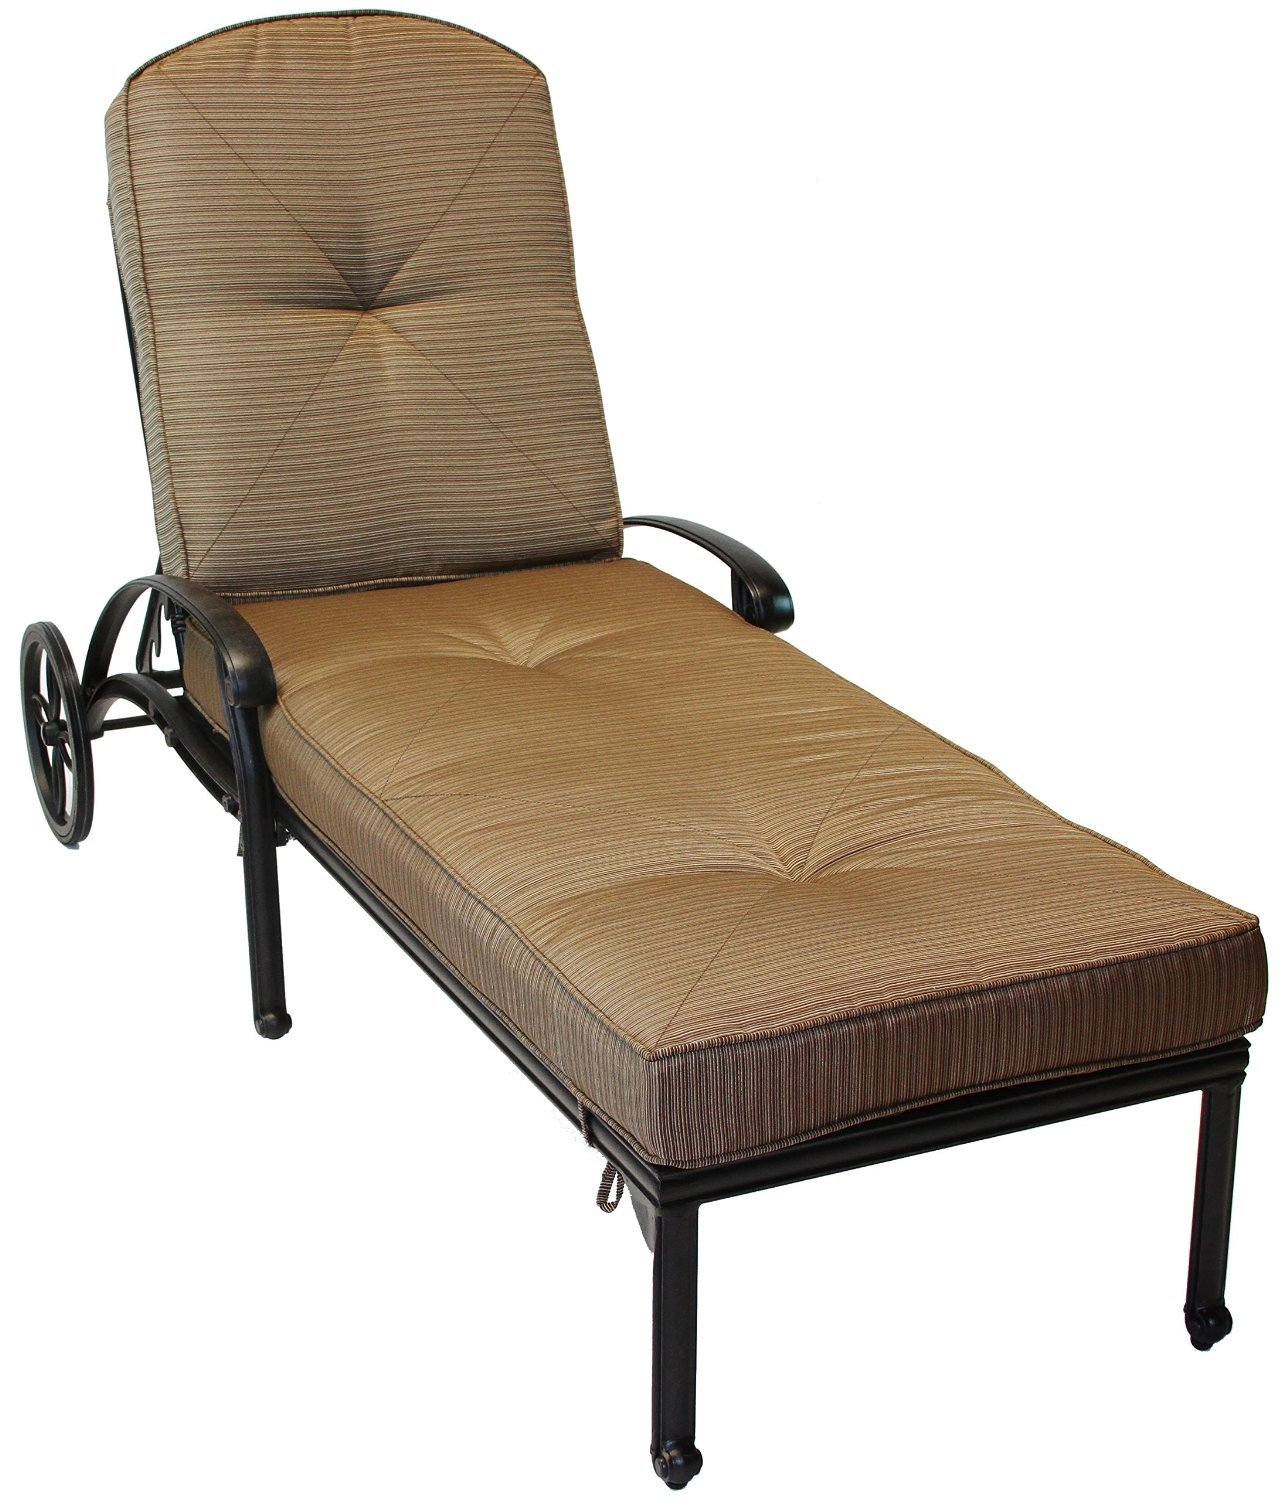 mandalay cast aluminum powder coated chaise lounge with. Black Bedroom Furniture Sets. Home Design Ideas